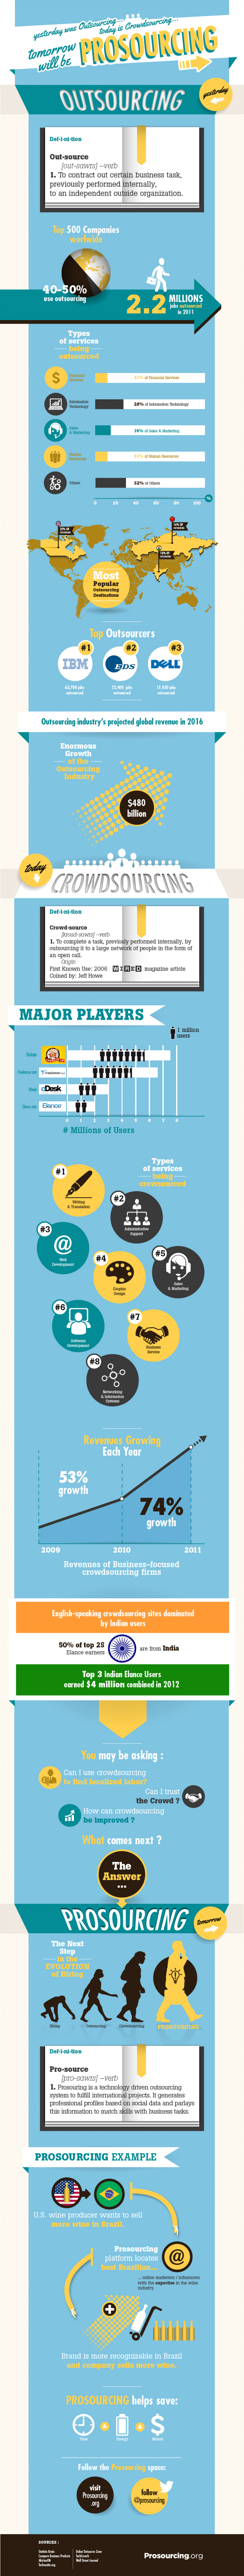 Next step in HR: Introduction to Prosourcing Infographic